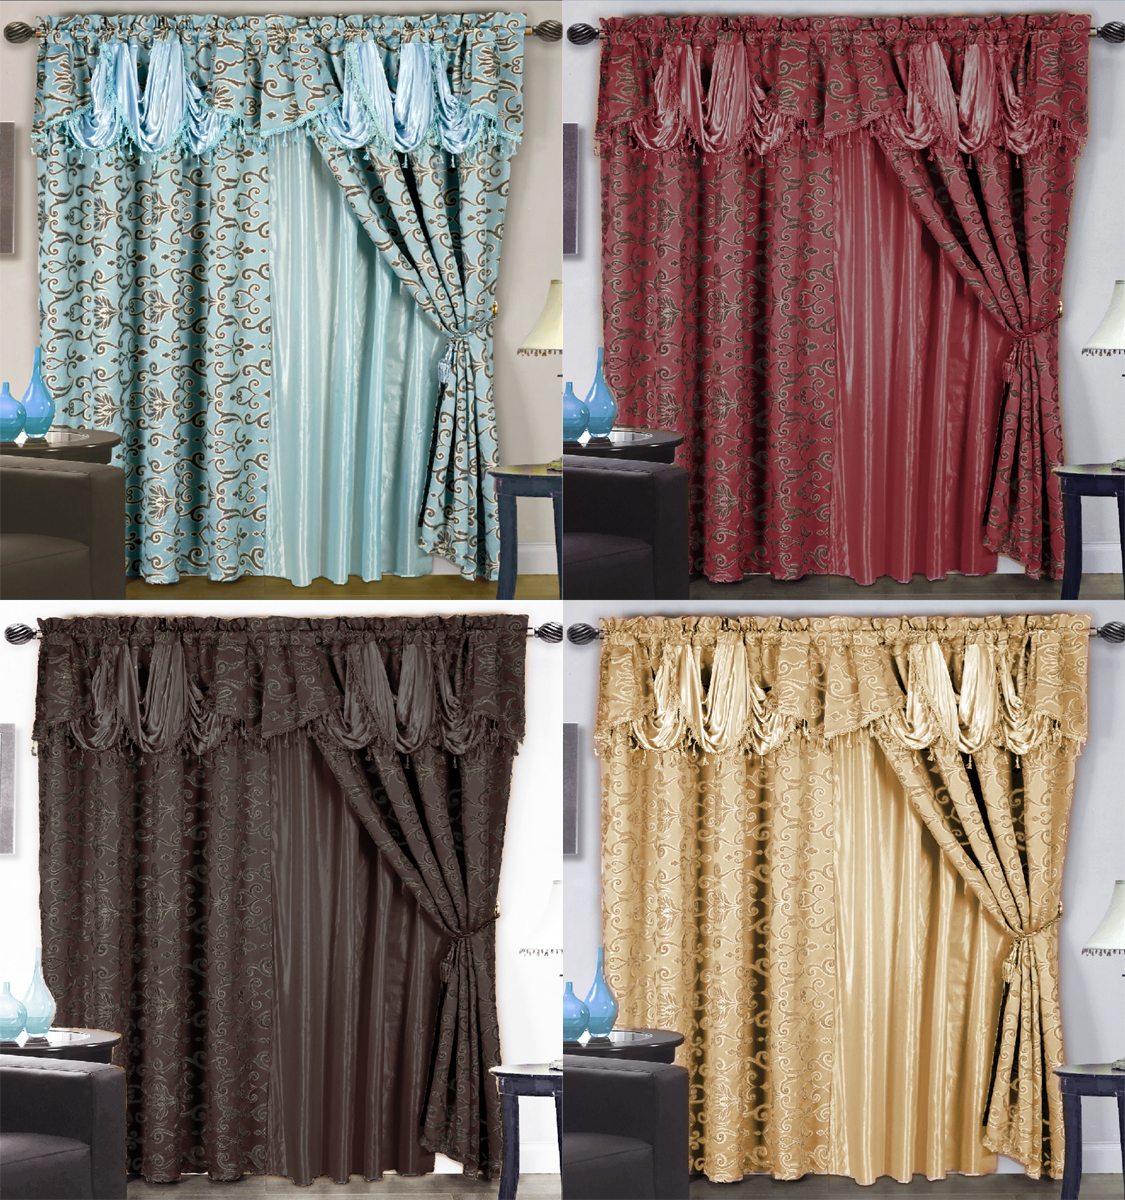 Details About 4 Pc Luxurious Satin Jacquard Damask Curtain Set Waterfall Valance Lining Tassel